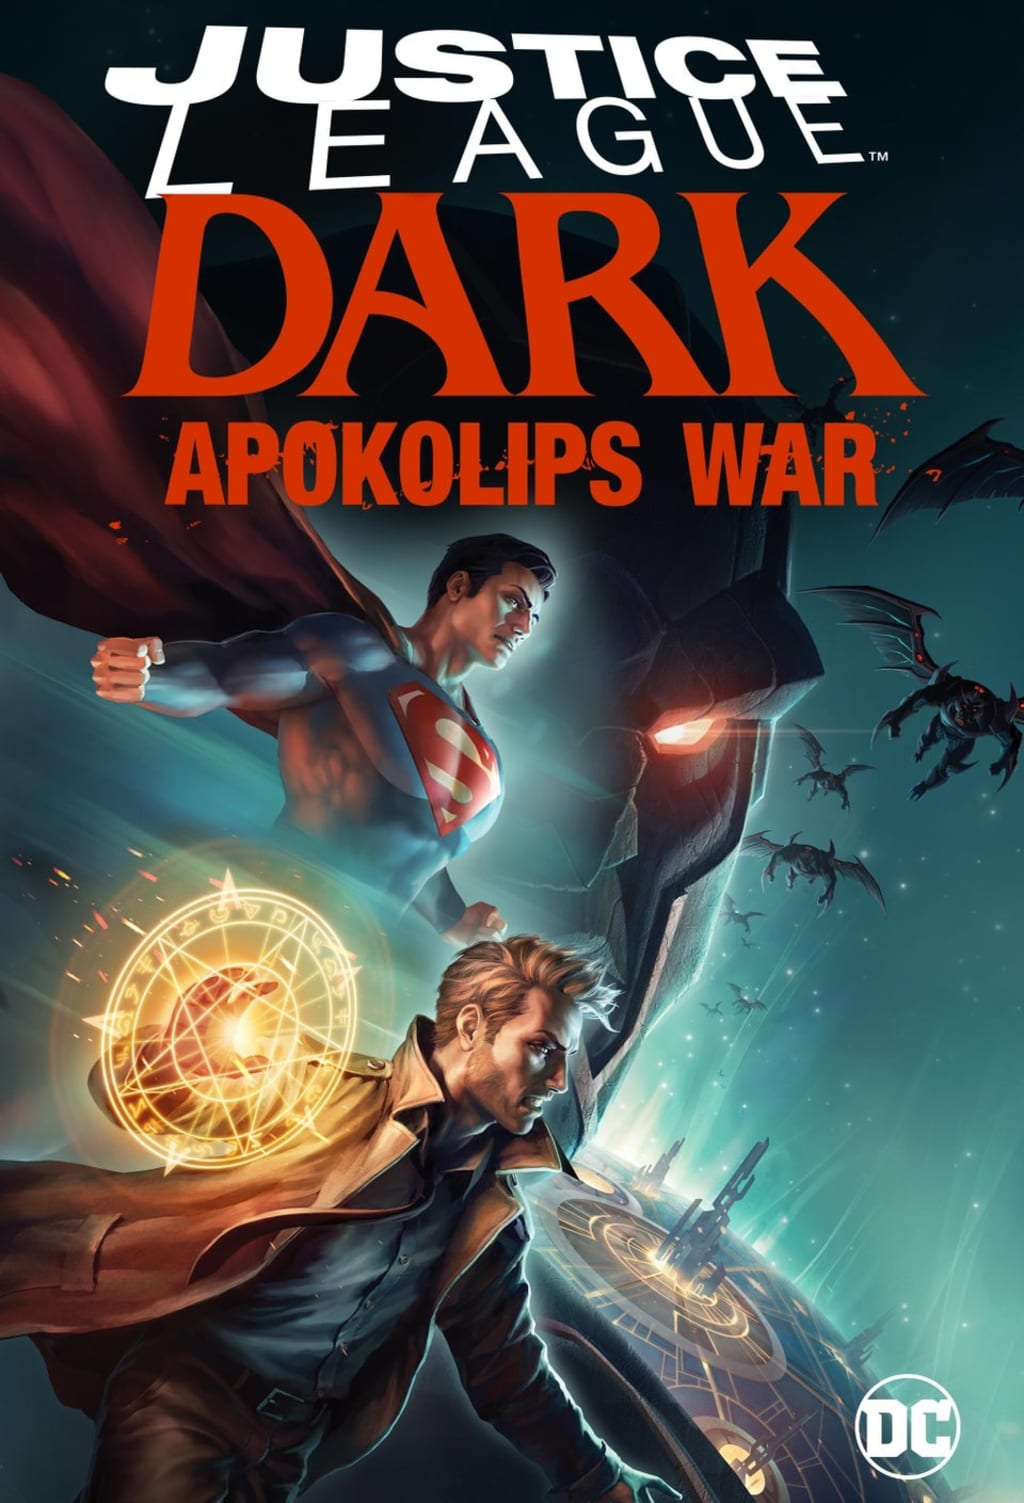 'Justice League Dark: Apokolips War' - The Endgame for the DCAMU